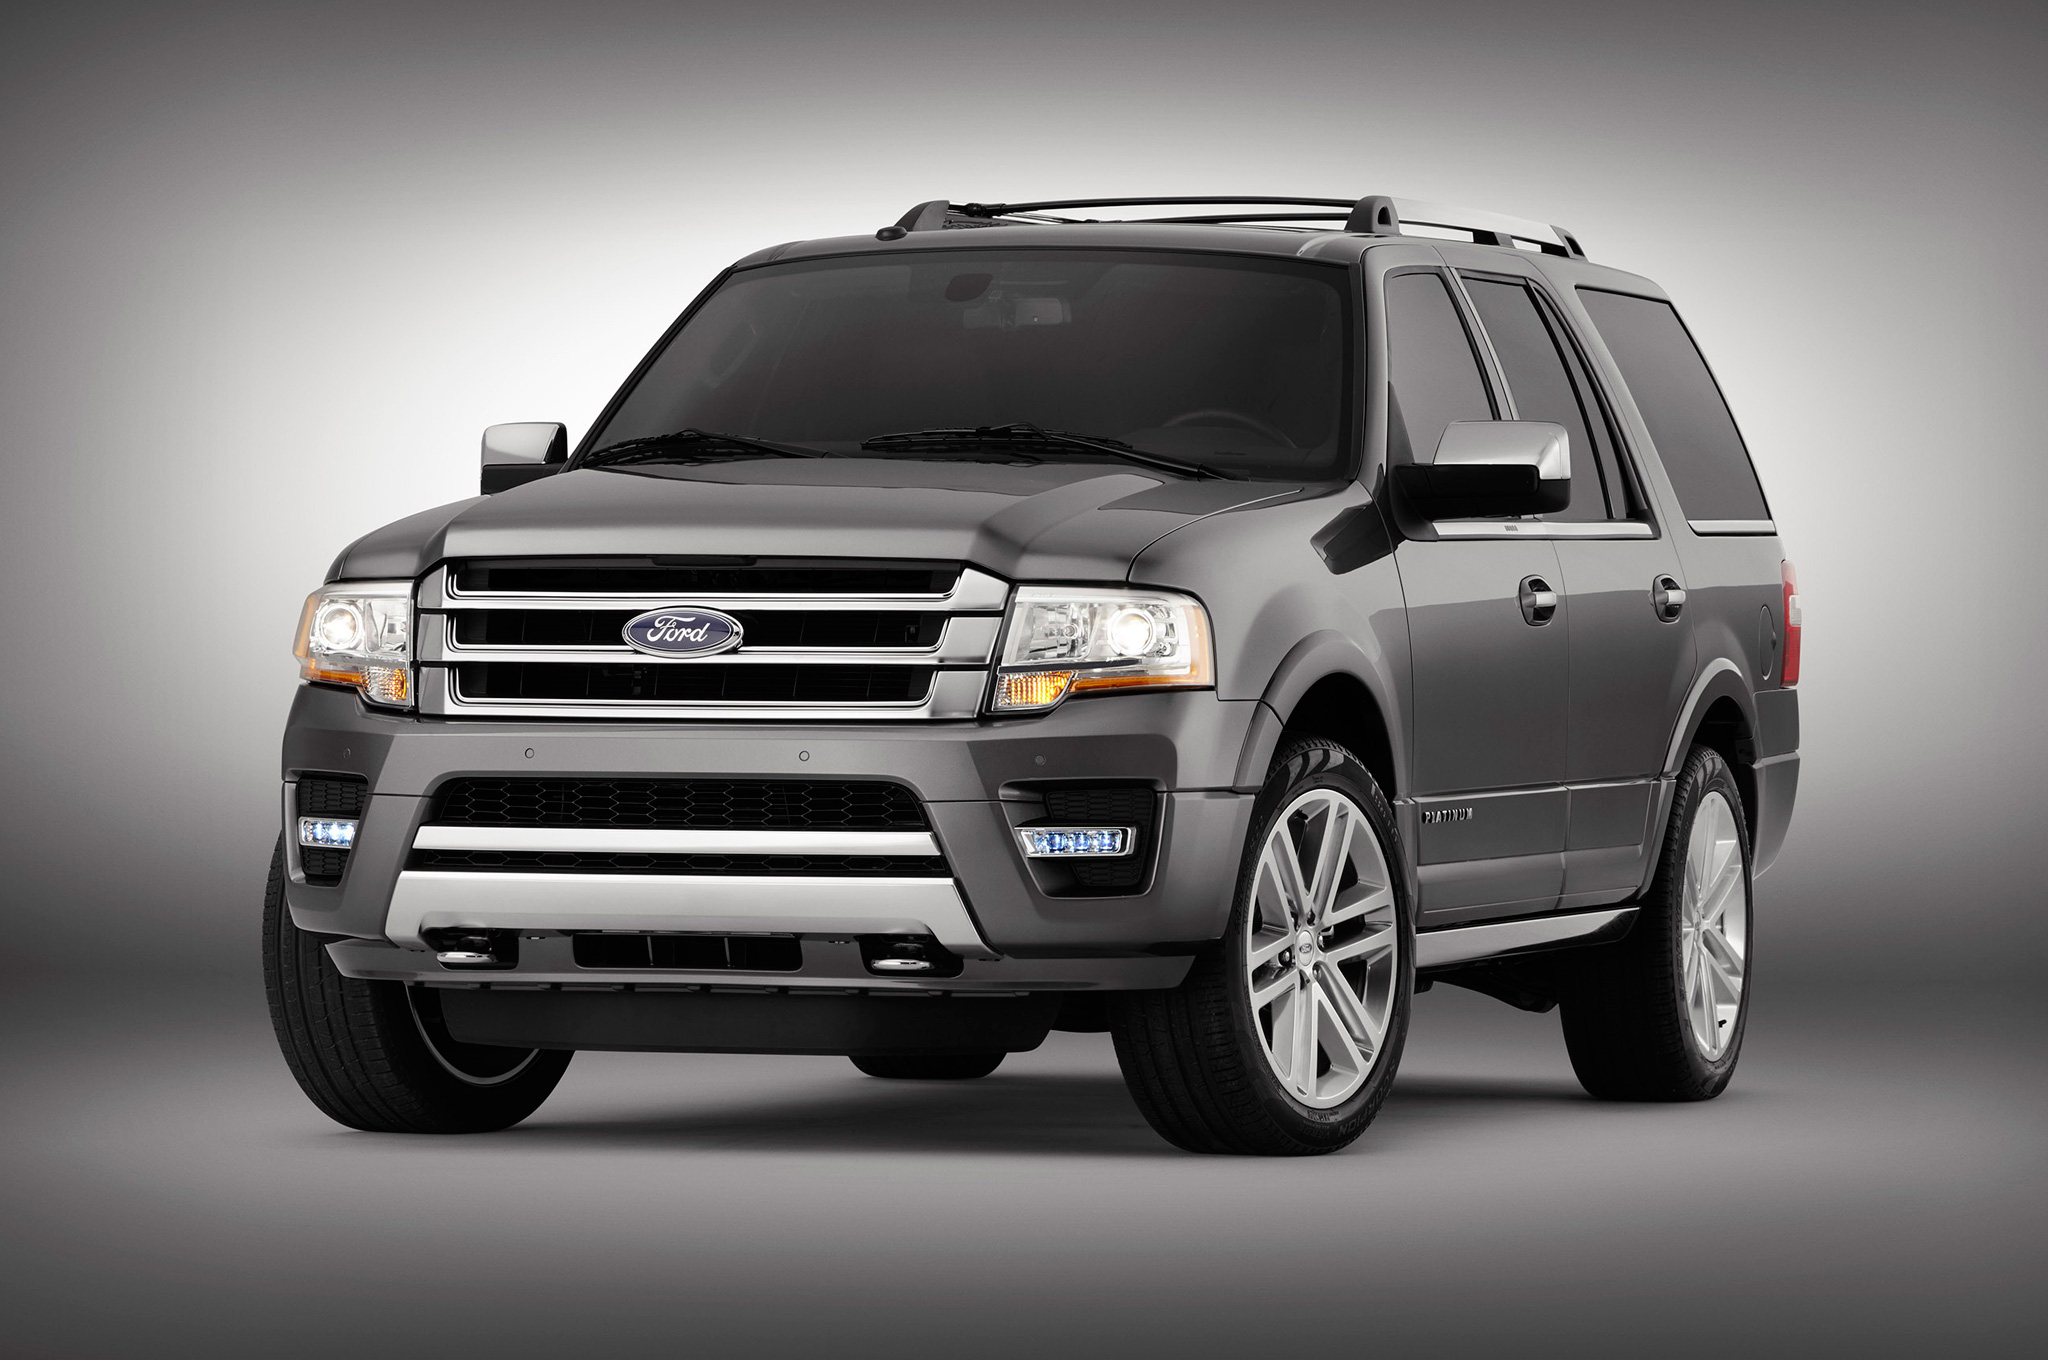 Ford Expedition First Look